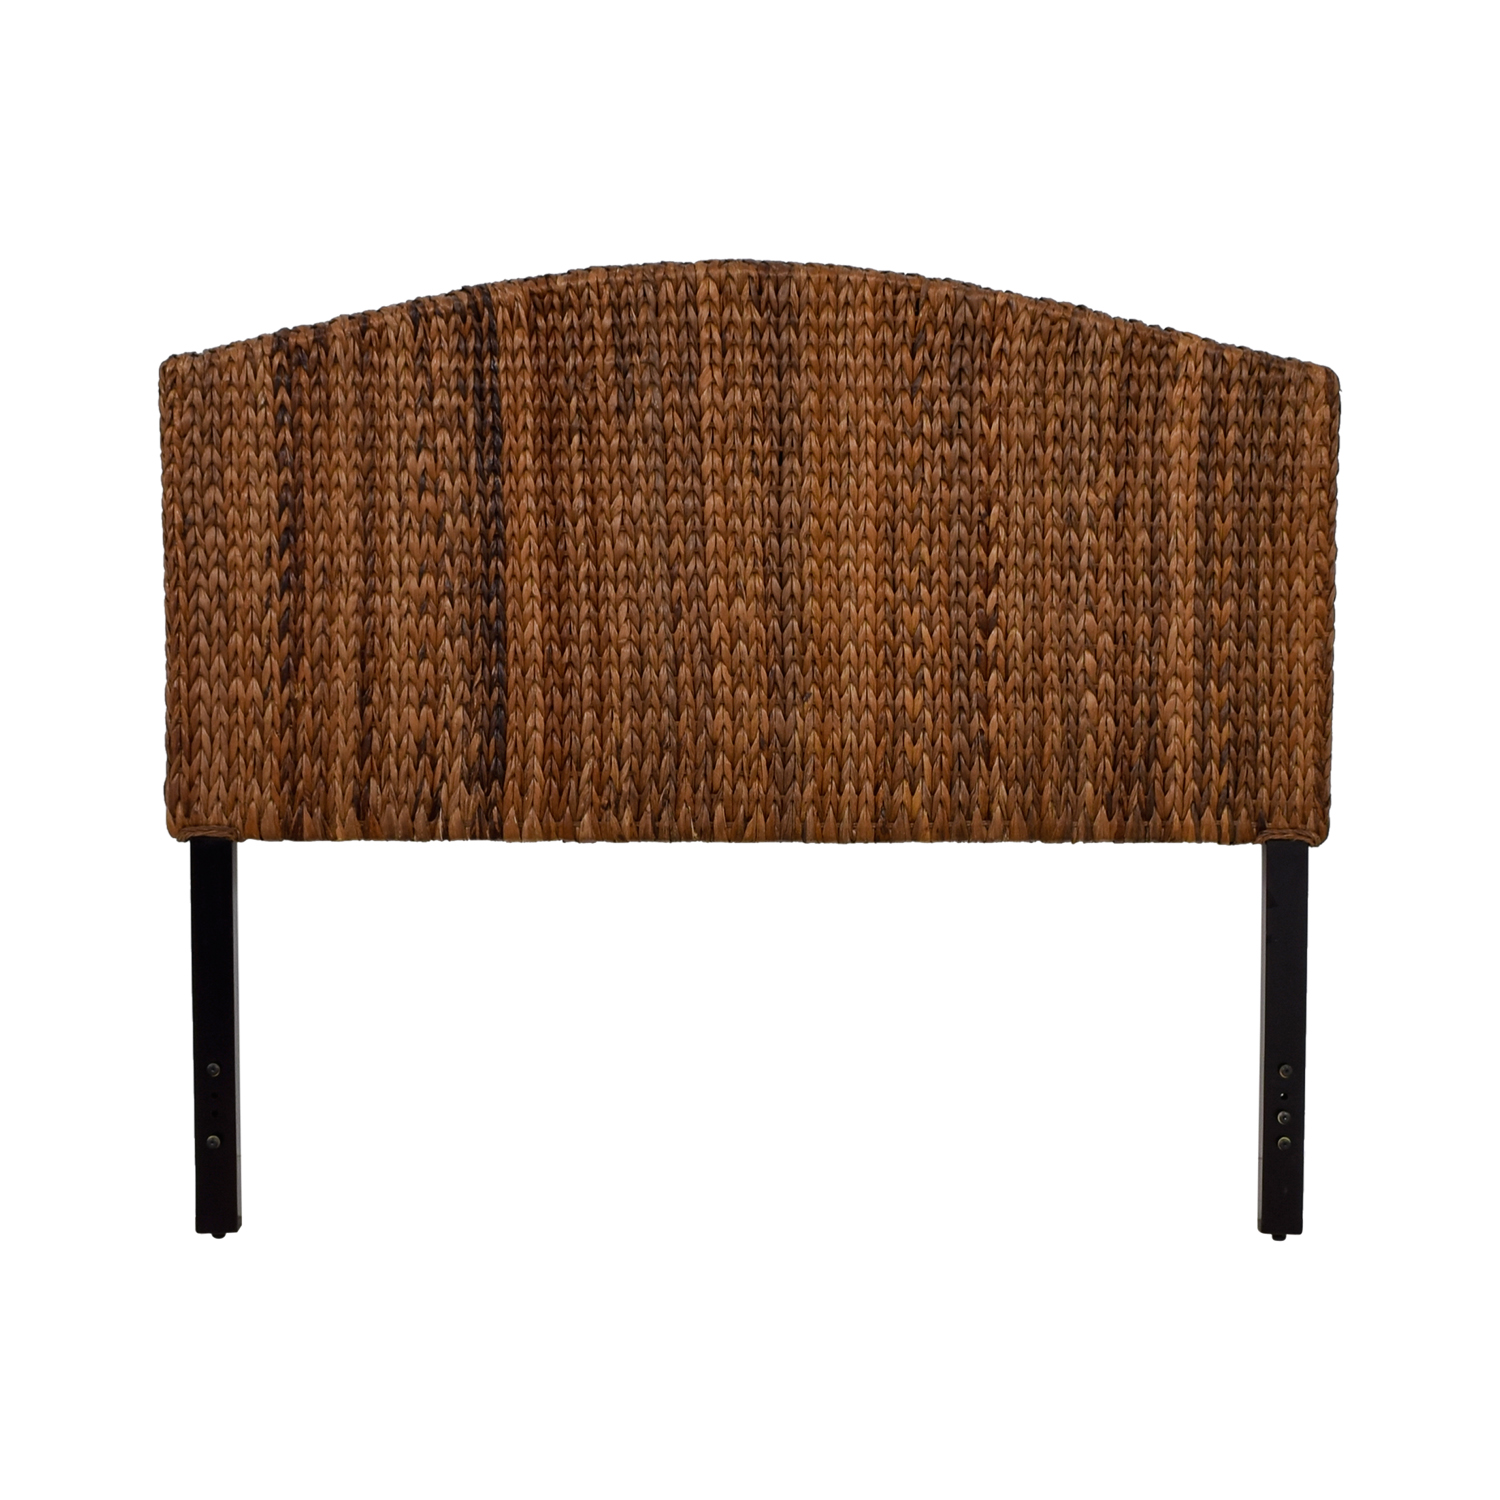 Espresso Banana Leaf Woven Queen Headboard